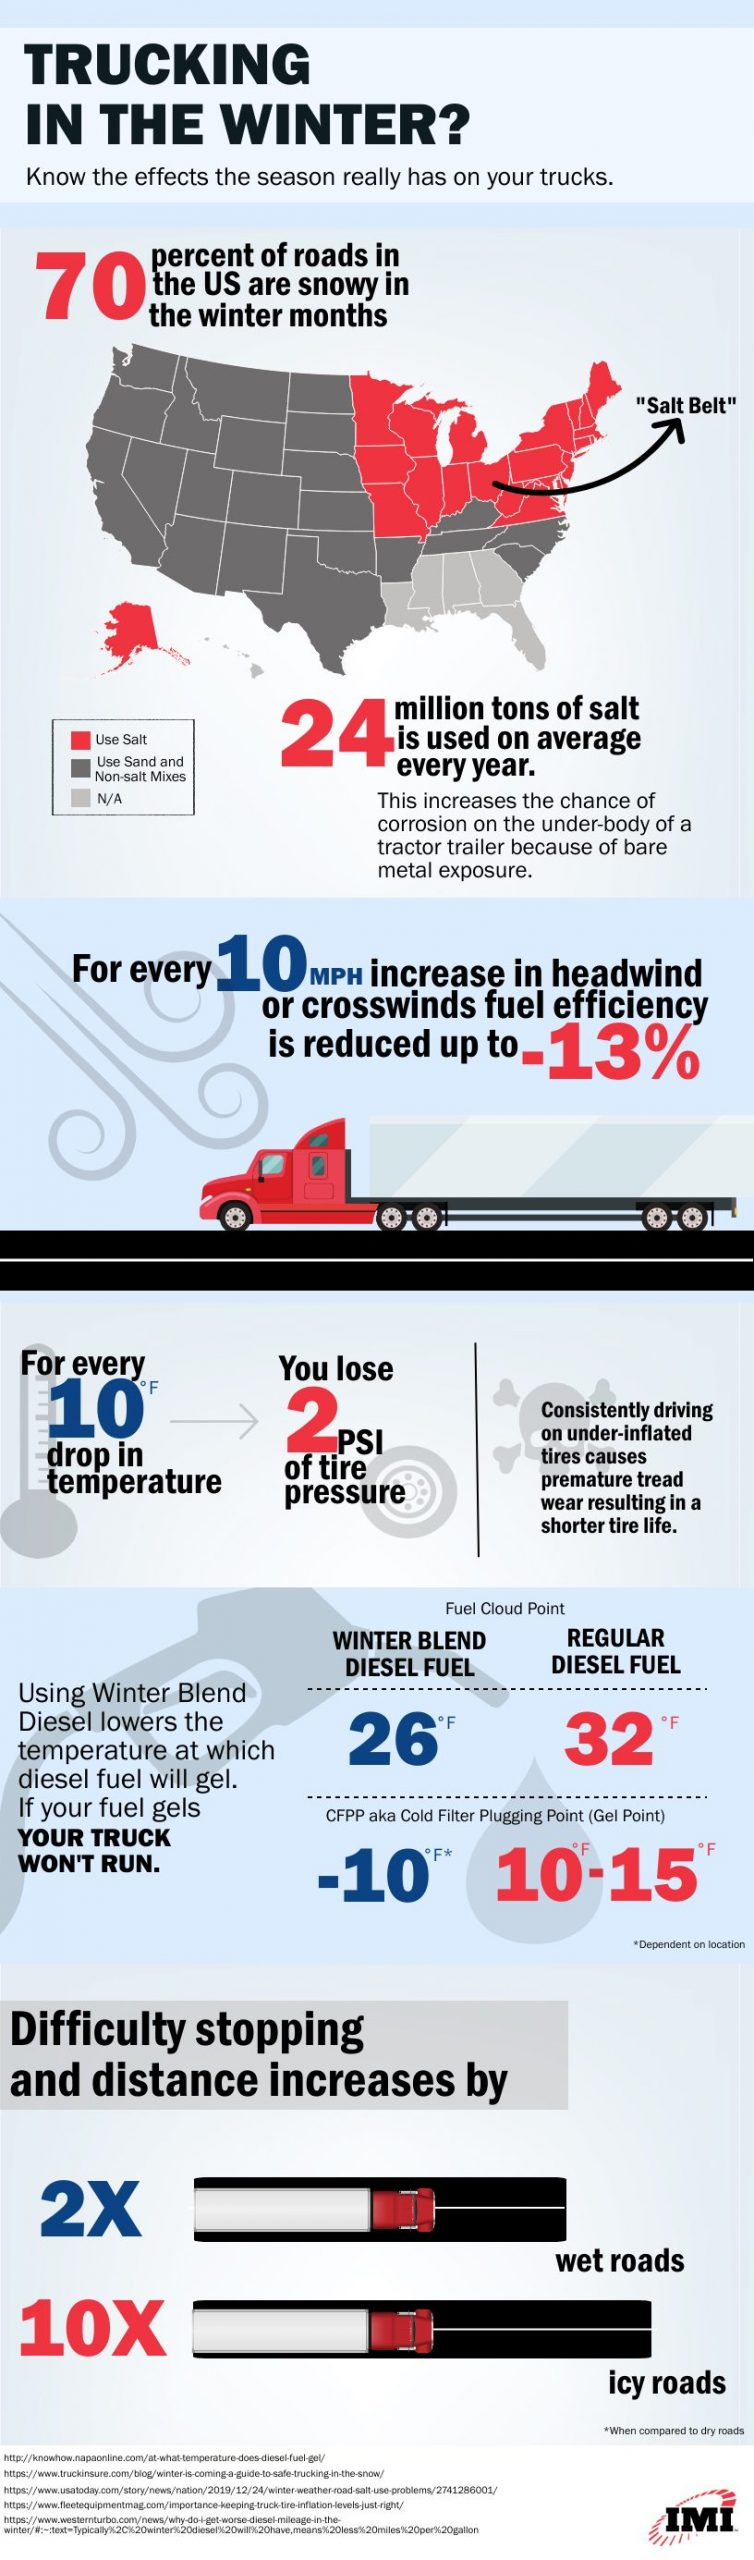 Commercial Trucking in the Winter